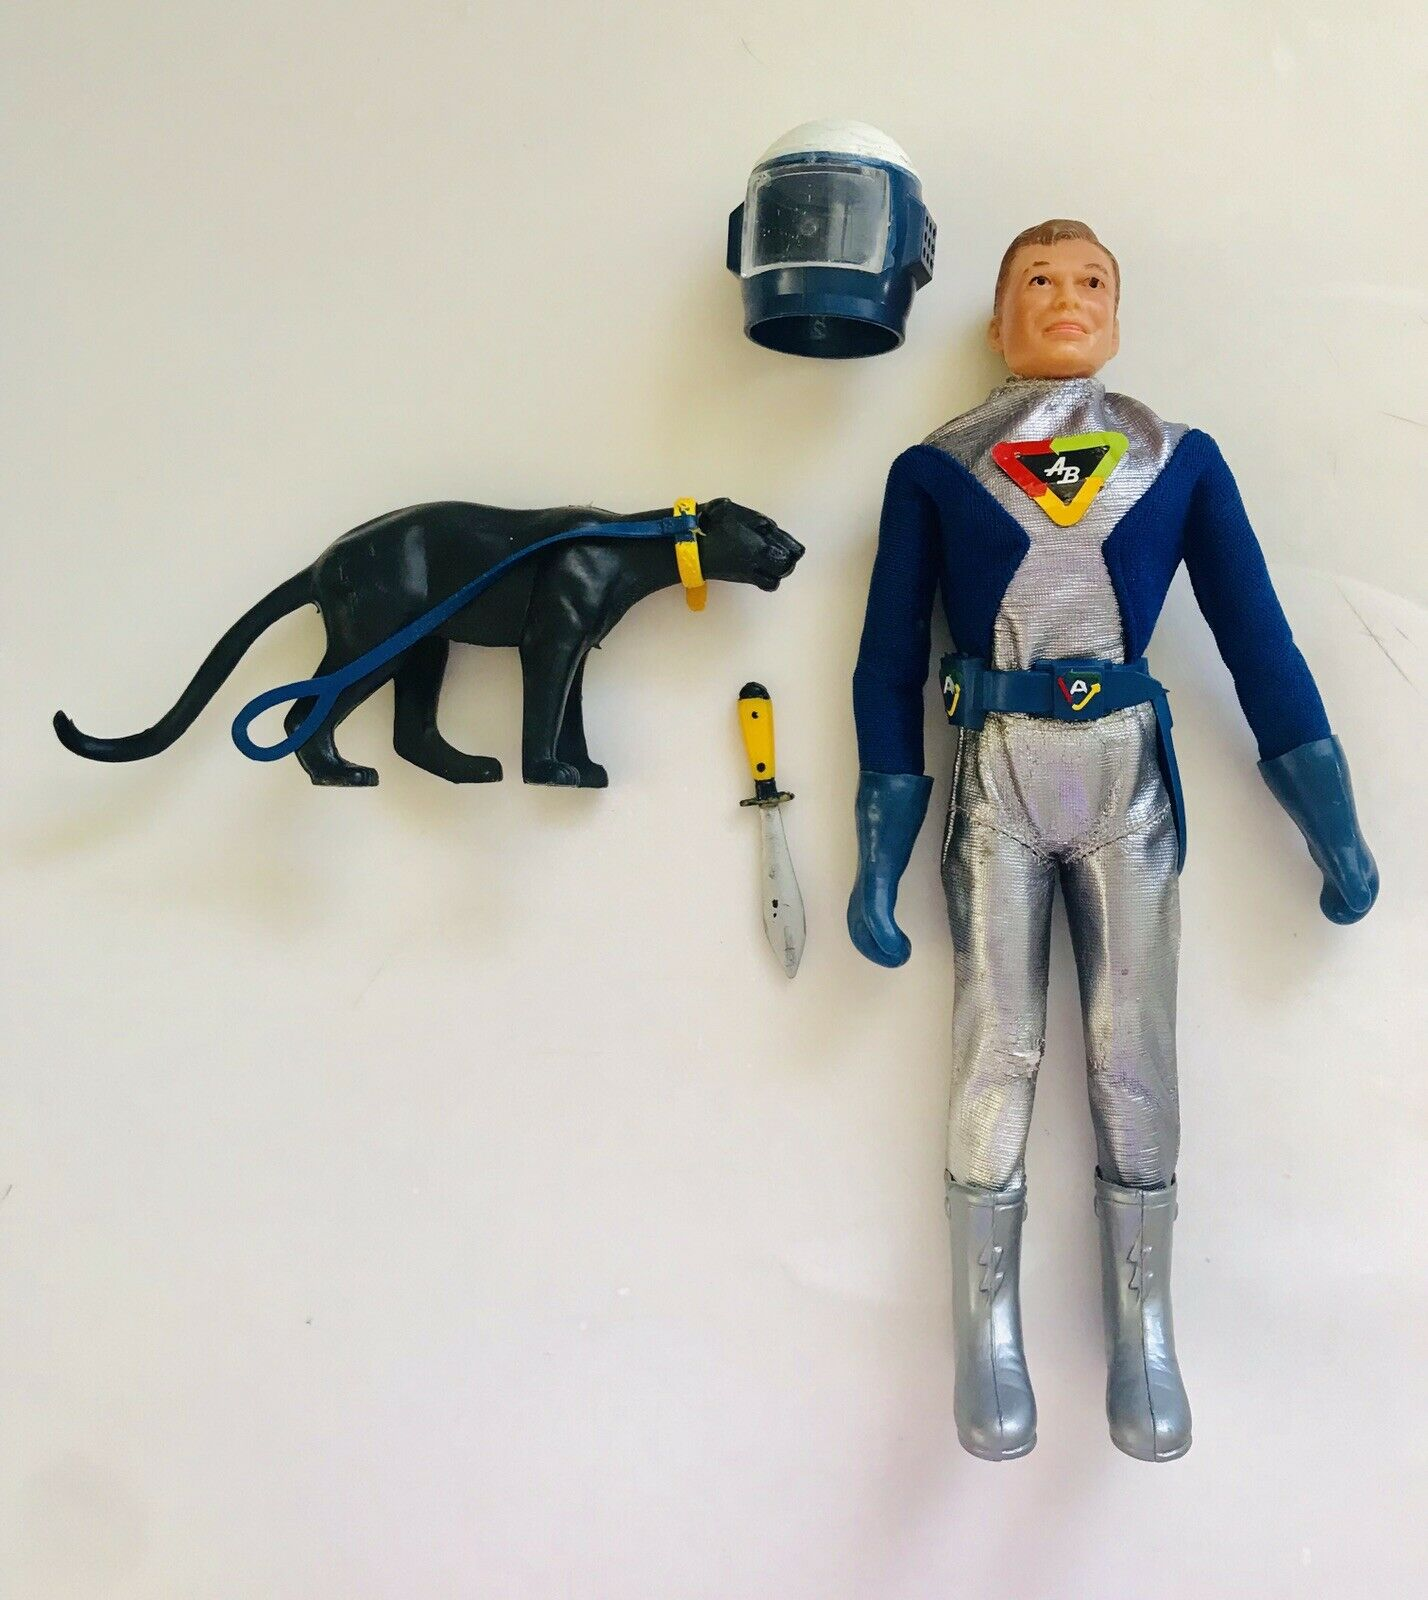 1968 ACTION BOY in SPACE SUIT by IDEAL TOYS Captain Action RARE